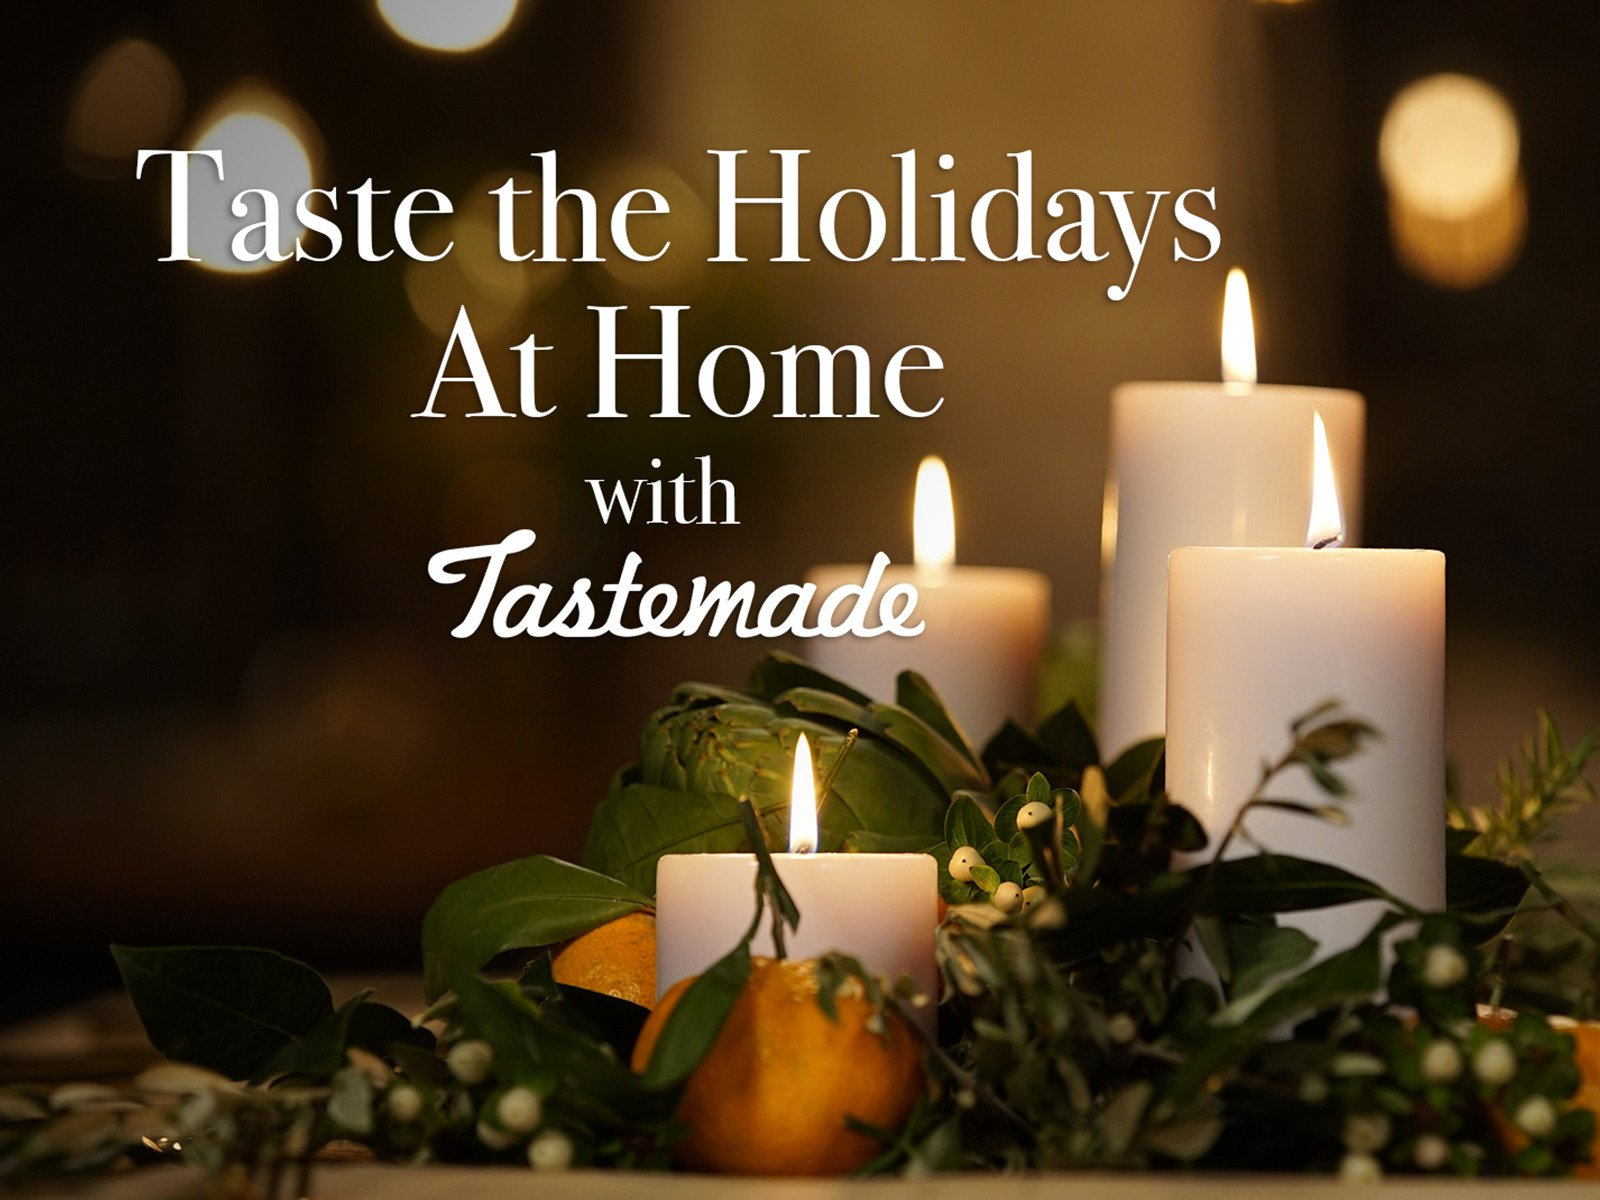 Taste the Season, at Home - Season 1